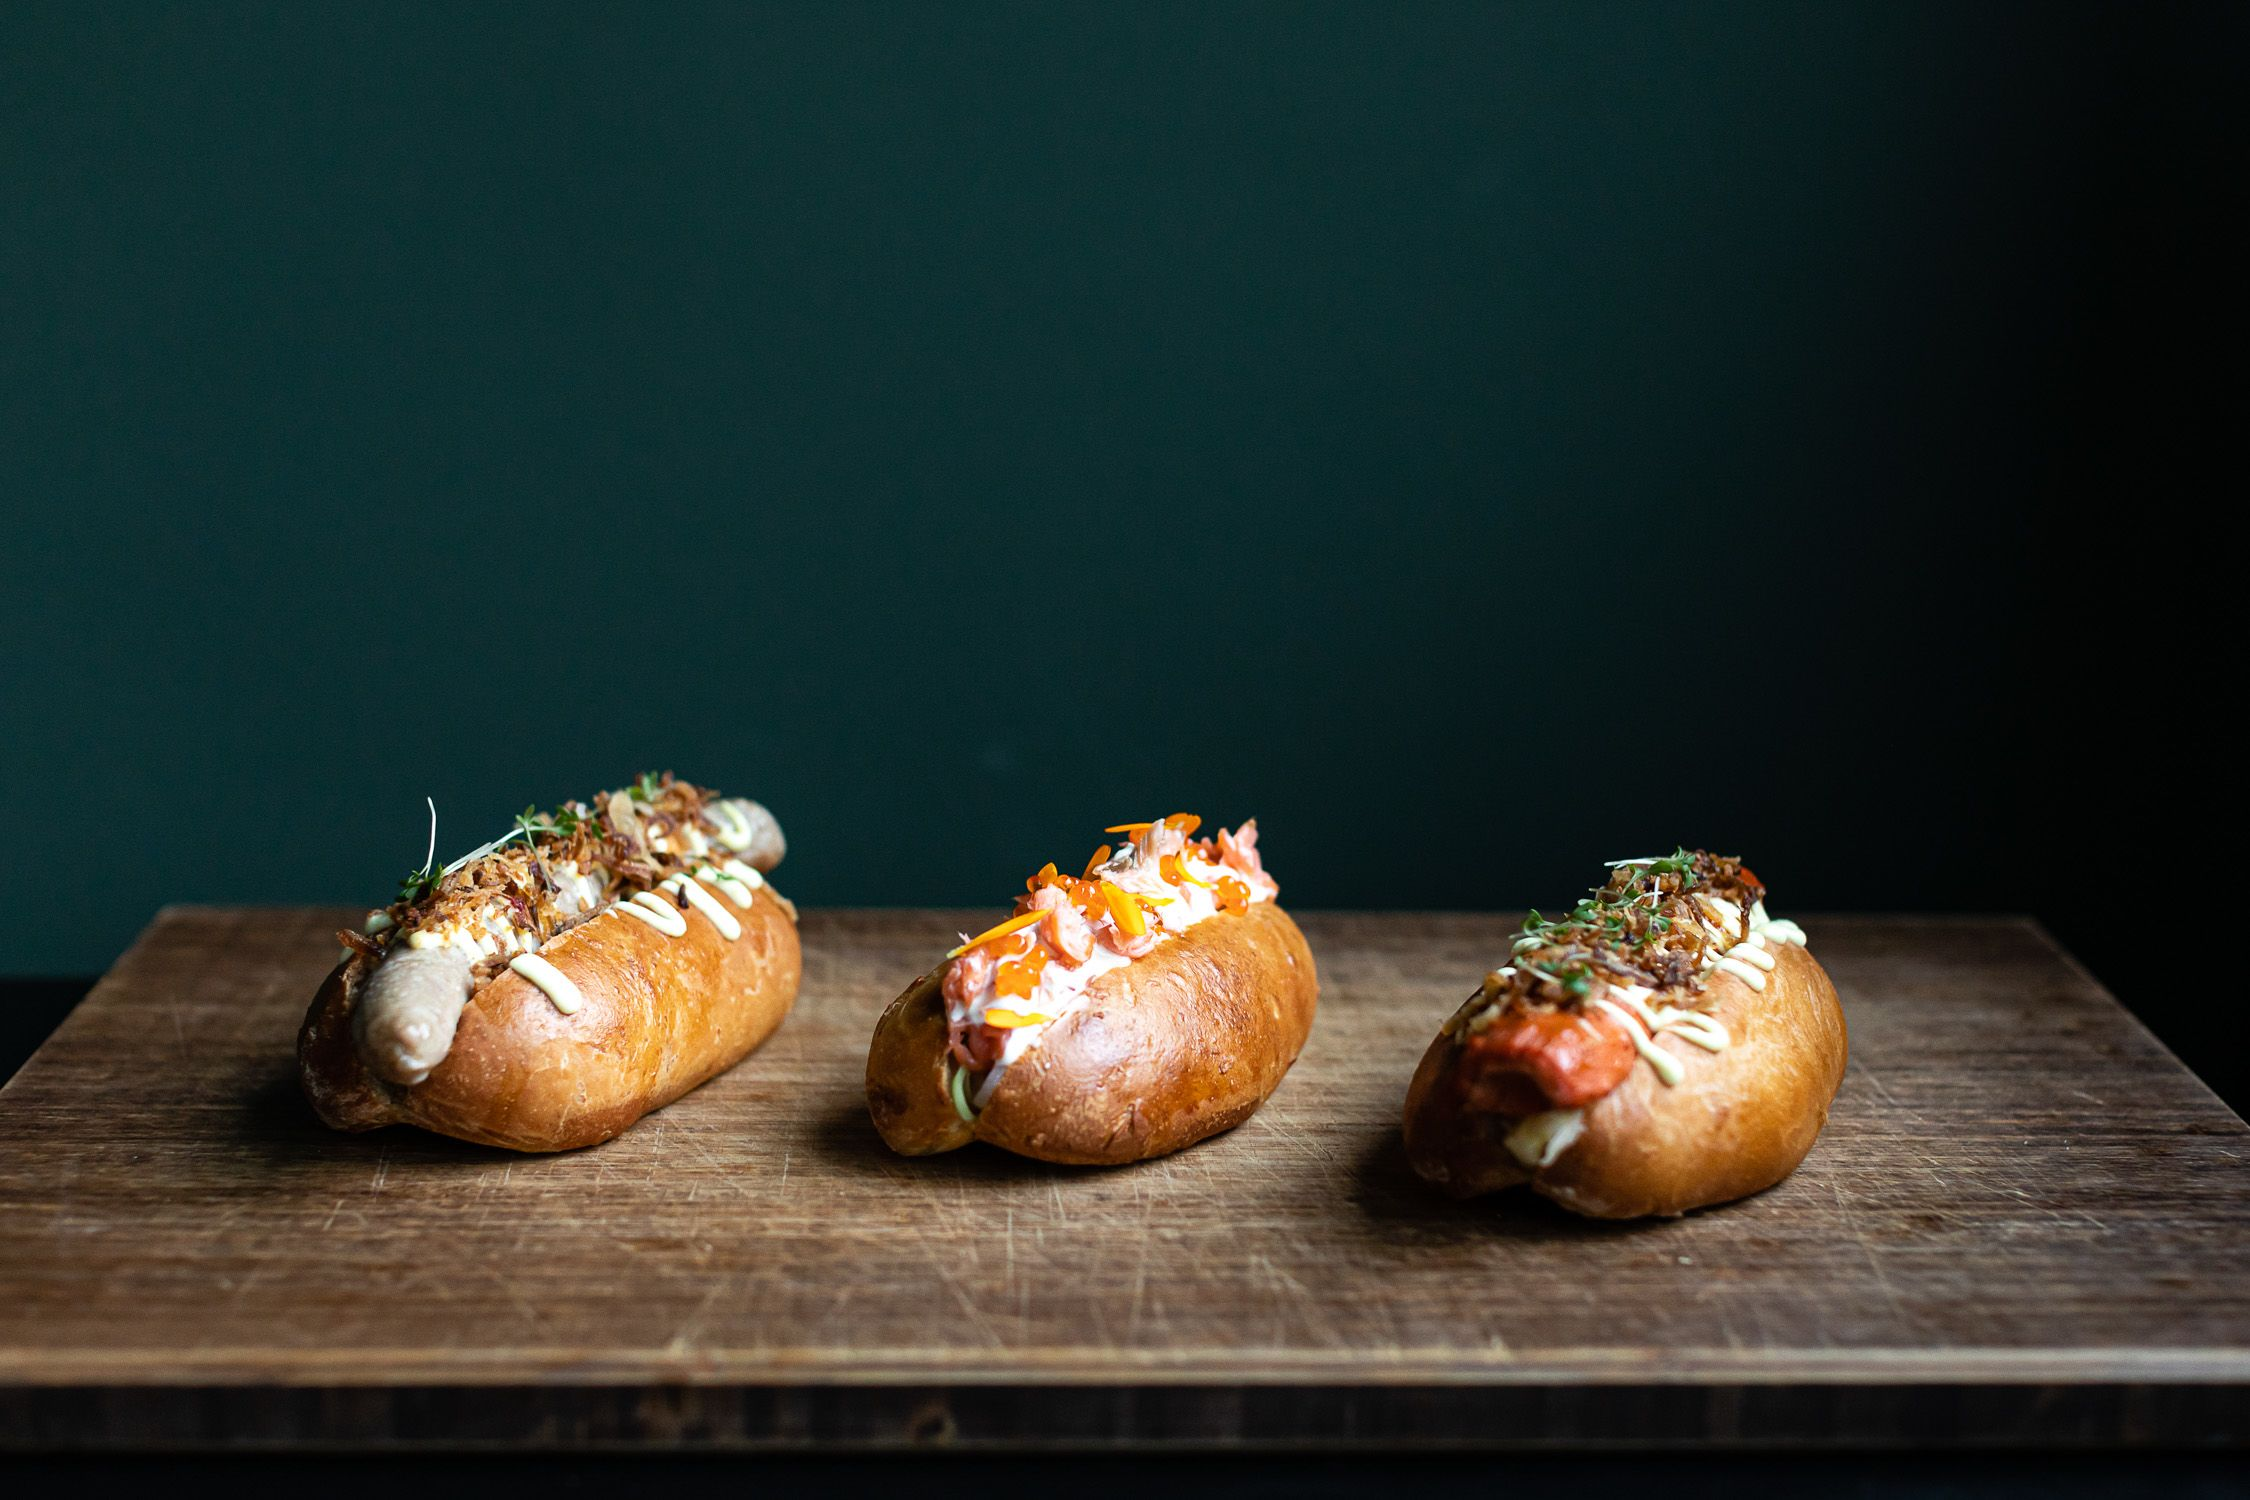 Pork, salmon, and carrot-based vegetarian hotdogs from Amsterdam restaurant Foer | Top American lunches for Takeaway and Delivery